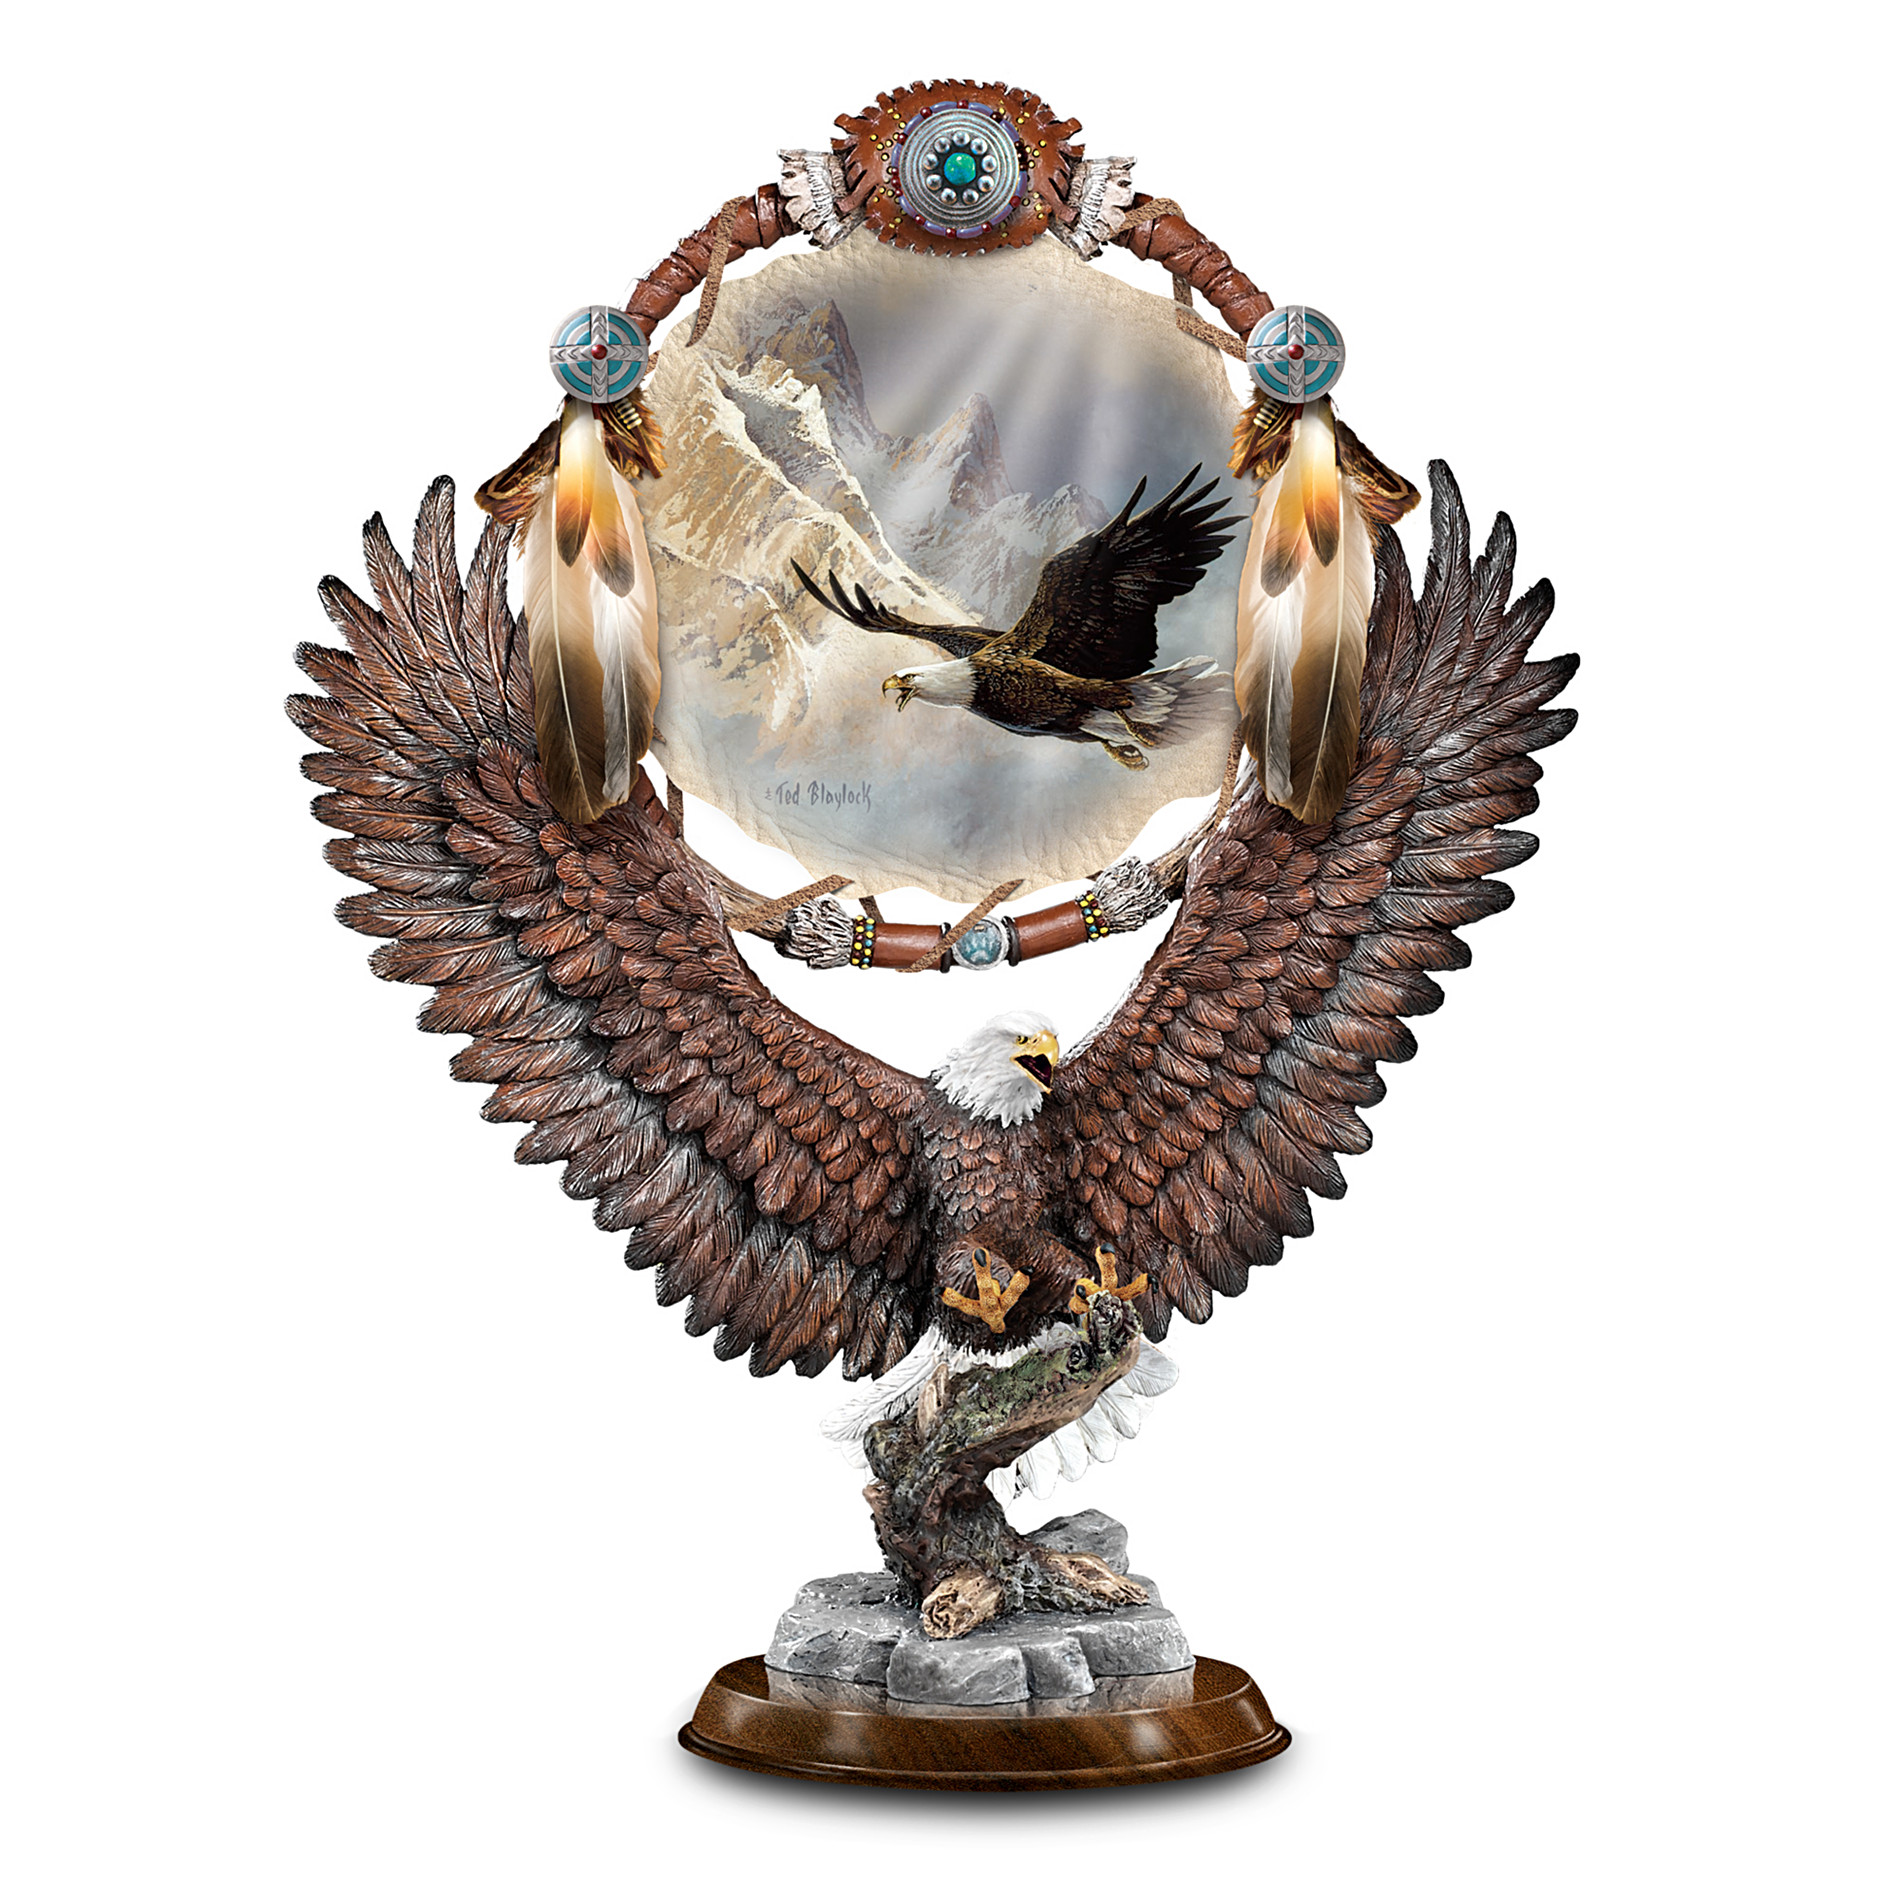 The Bradford Exchange Soaring Dream Ted Blaylock Collectible Bald Eagle Art Sculpture With Replica Dreamcatcher at Sears.com